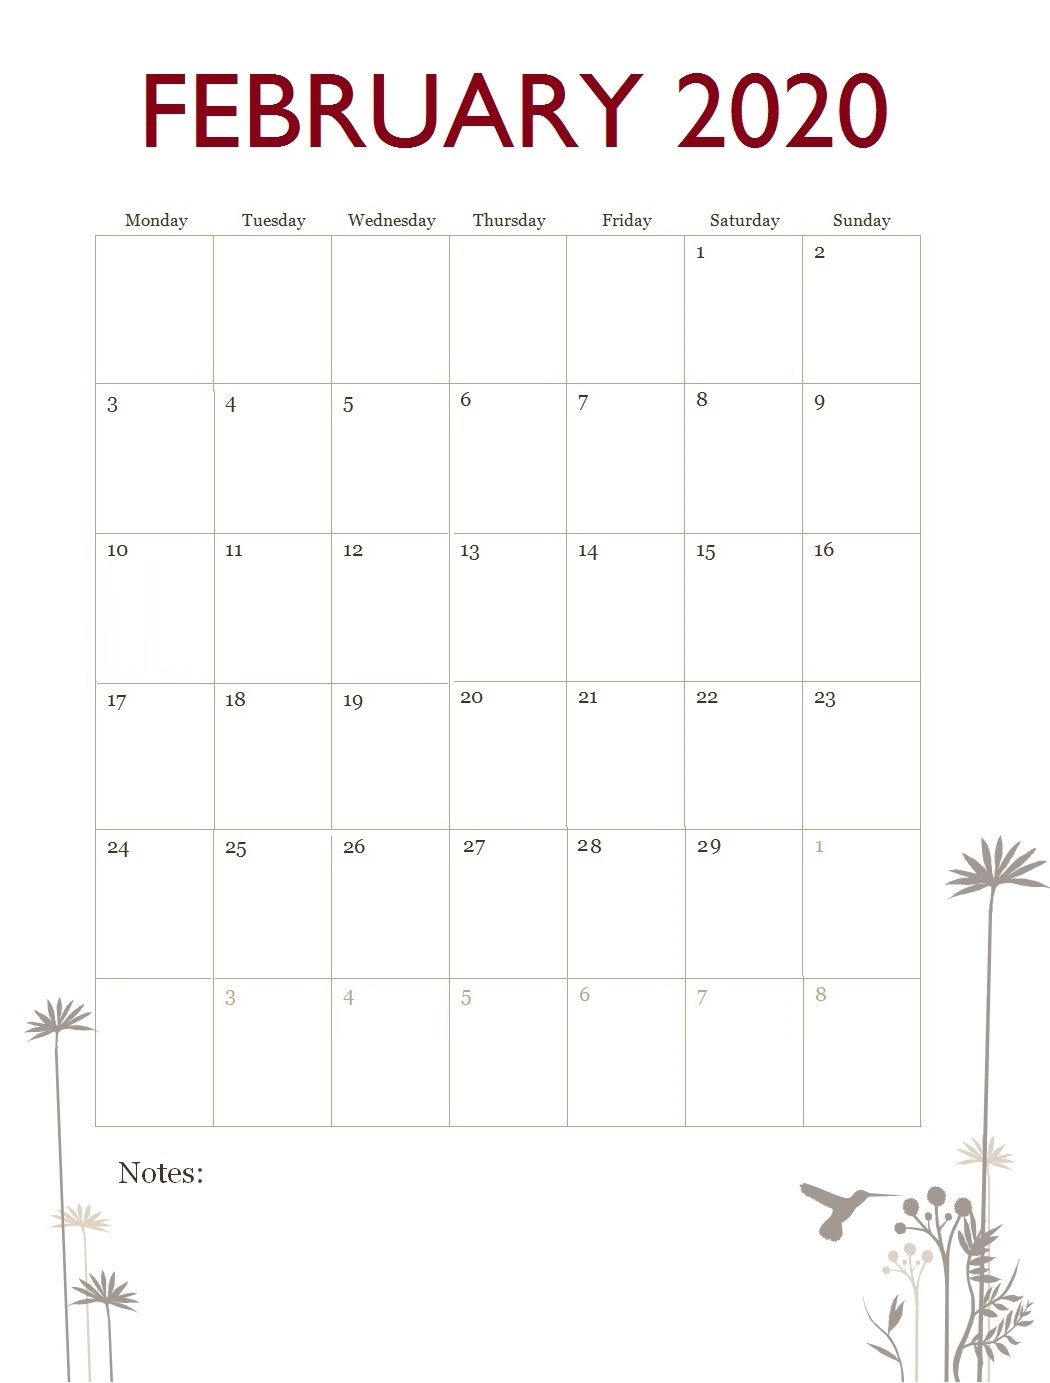 February 2020 Office Table Calendar